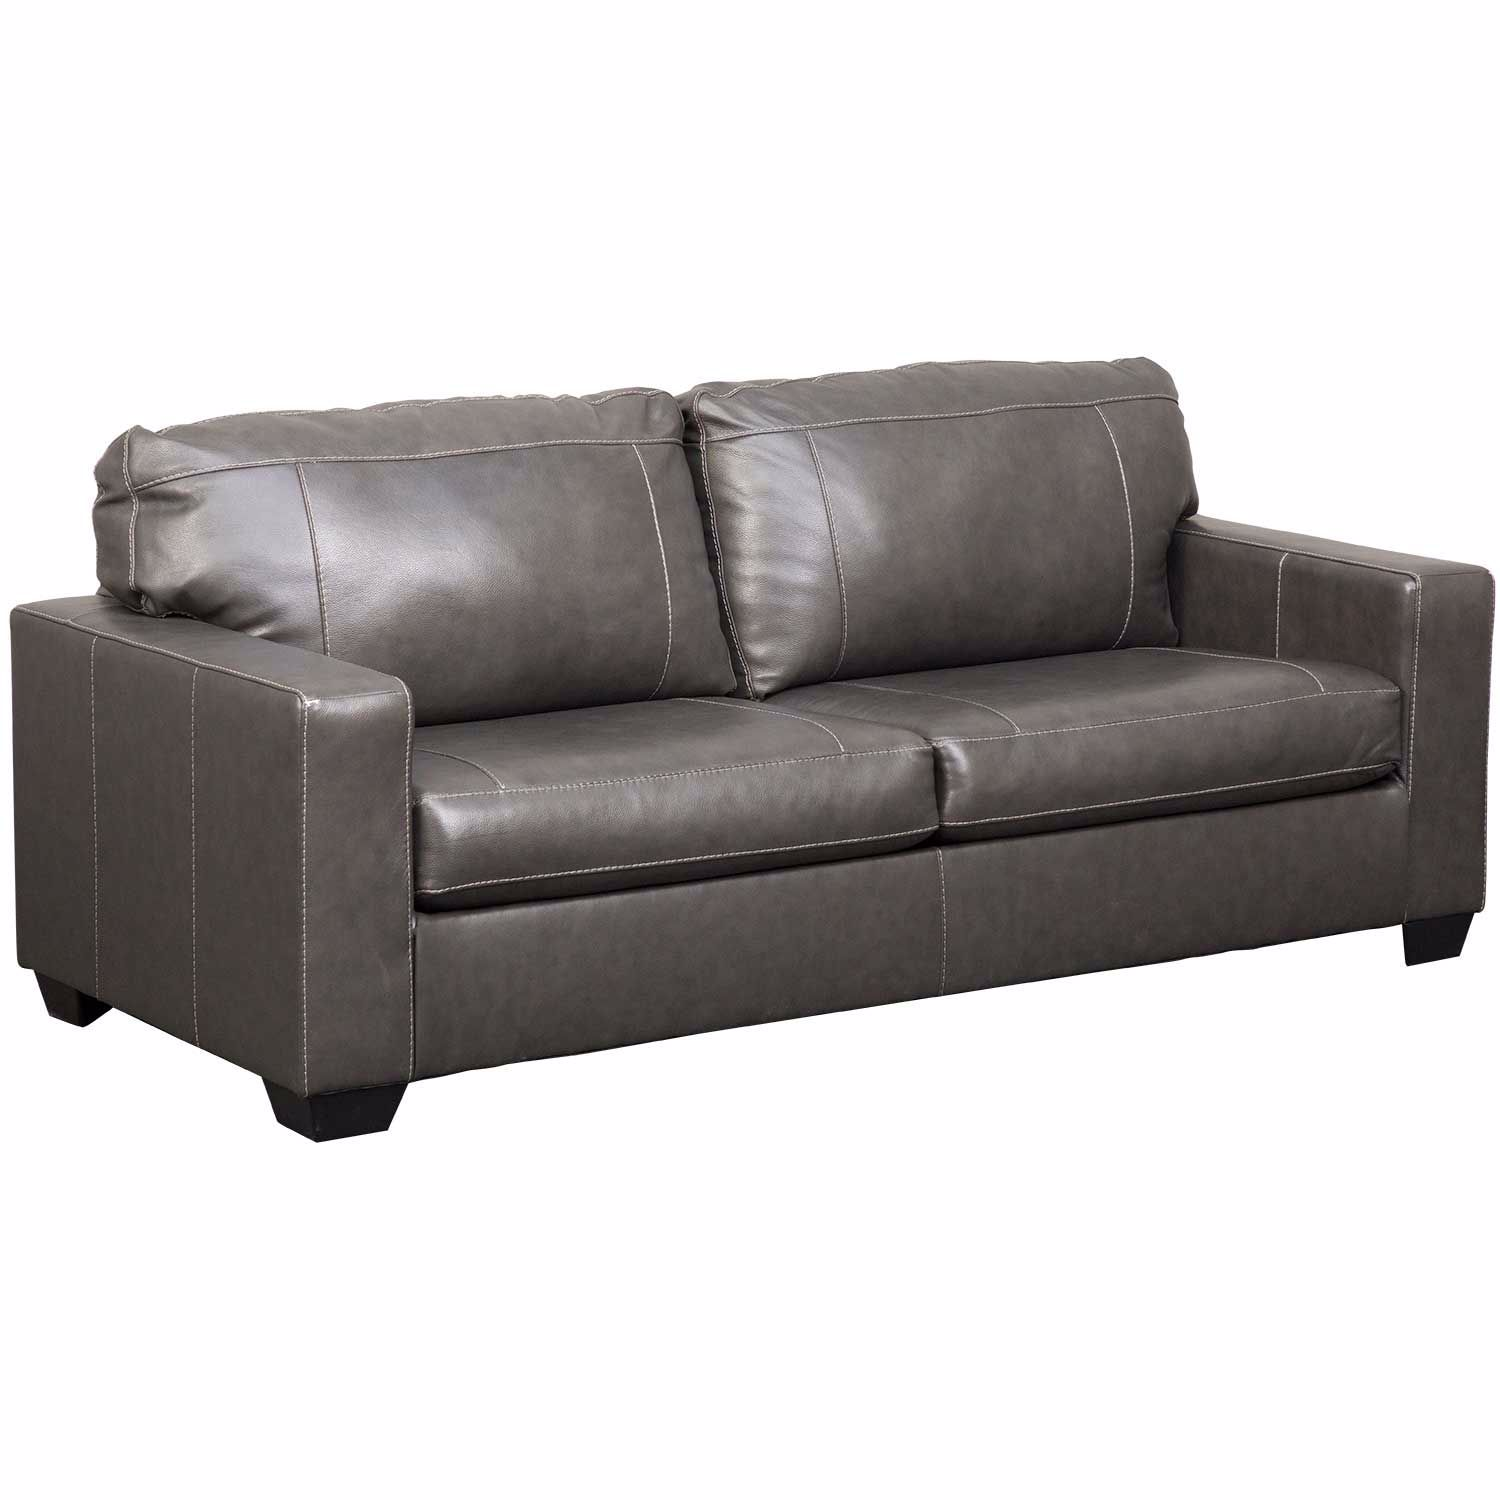 Picture of Morelos Gray Italian Leather Queen Sleeper Sofa